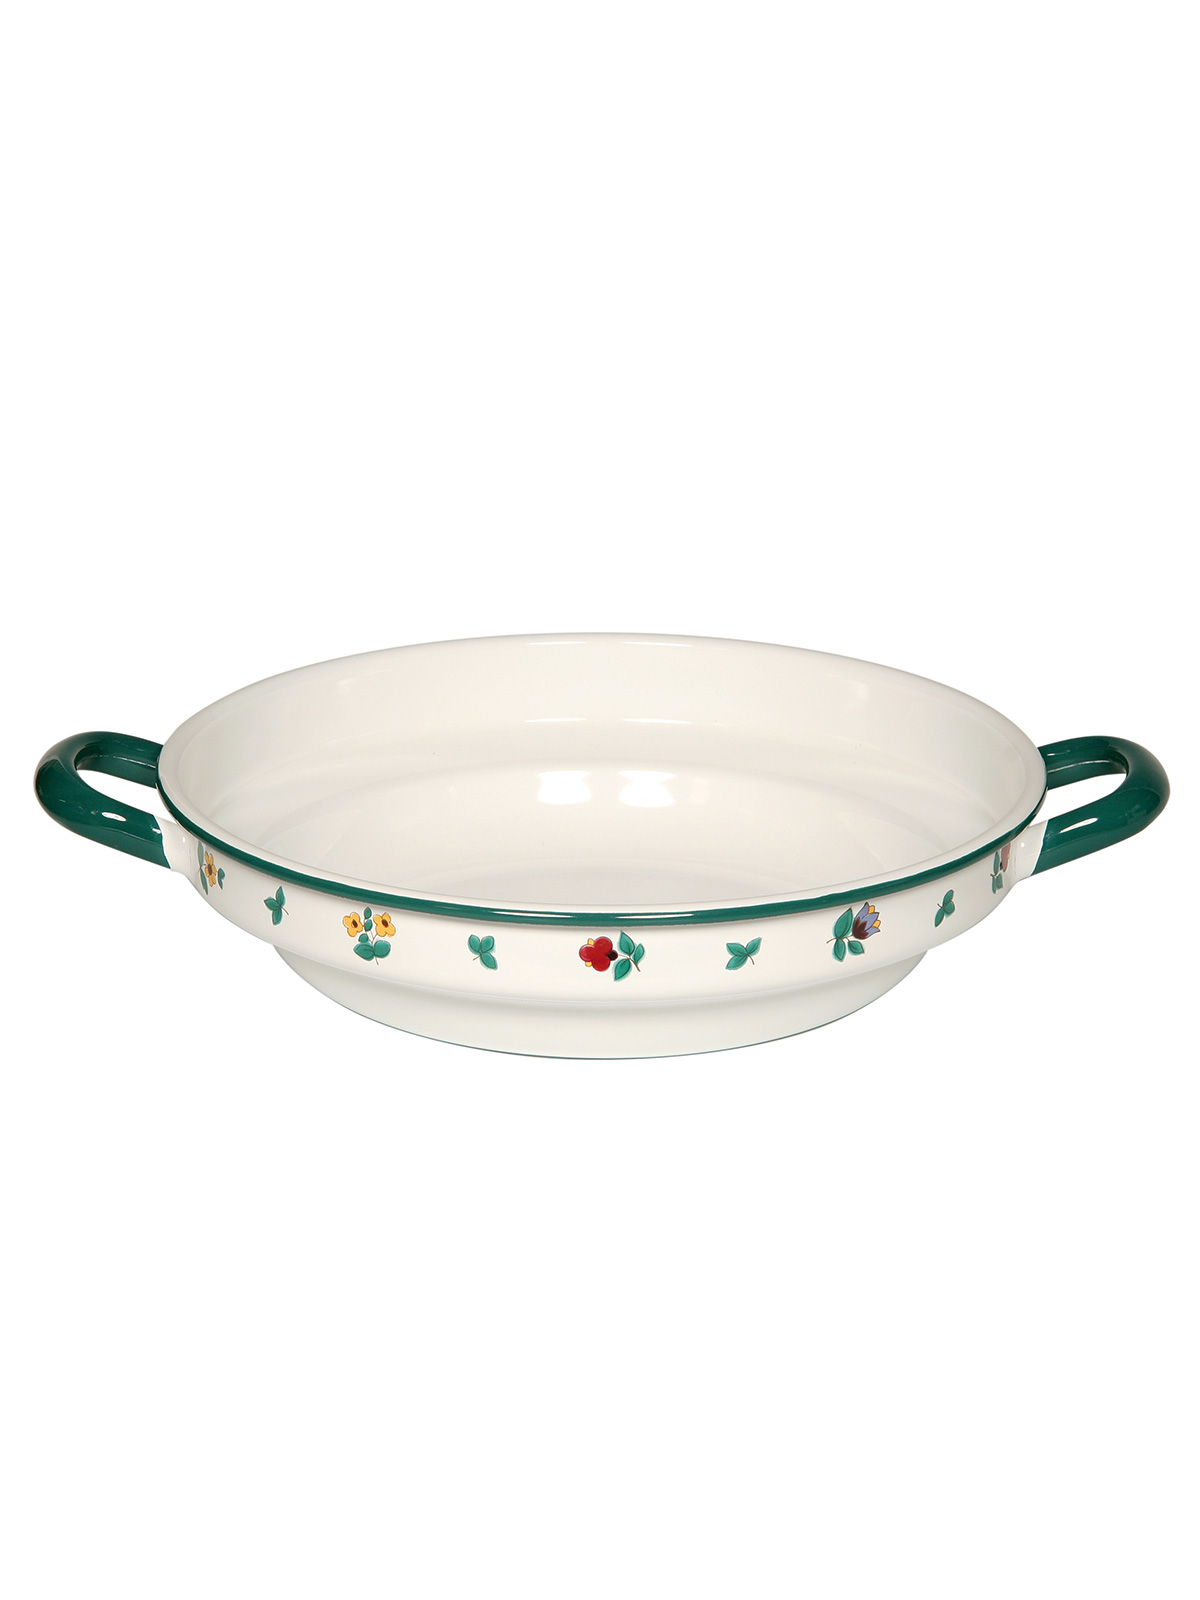 farmer bowl with flowers 2l (0219-49)